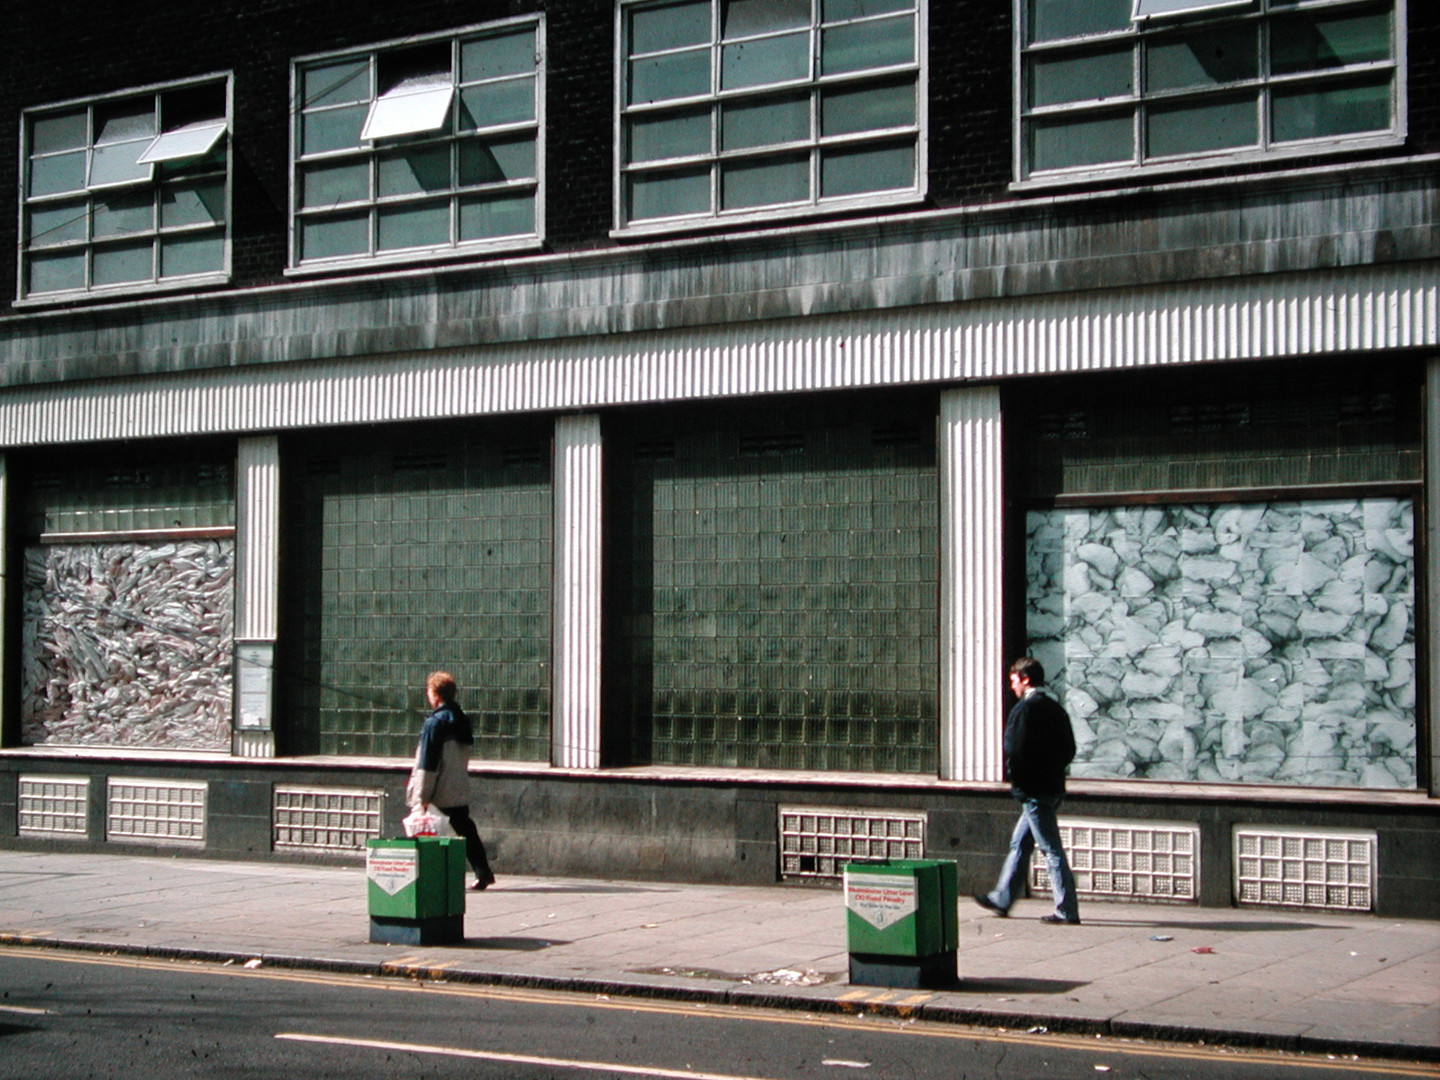 Temporary installation for The Windows at Central St Martin's College of Art and Design, 109 Charing Cross Road, London. 1990